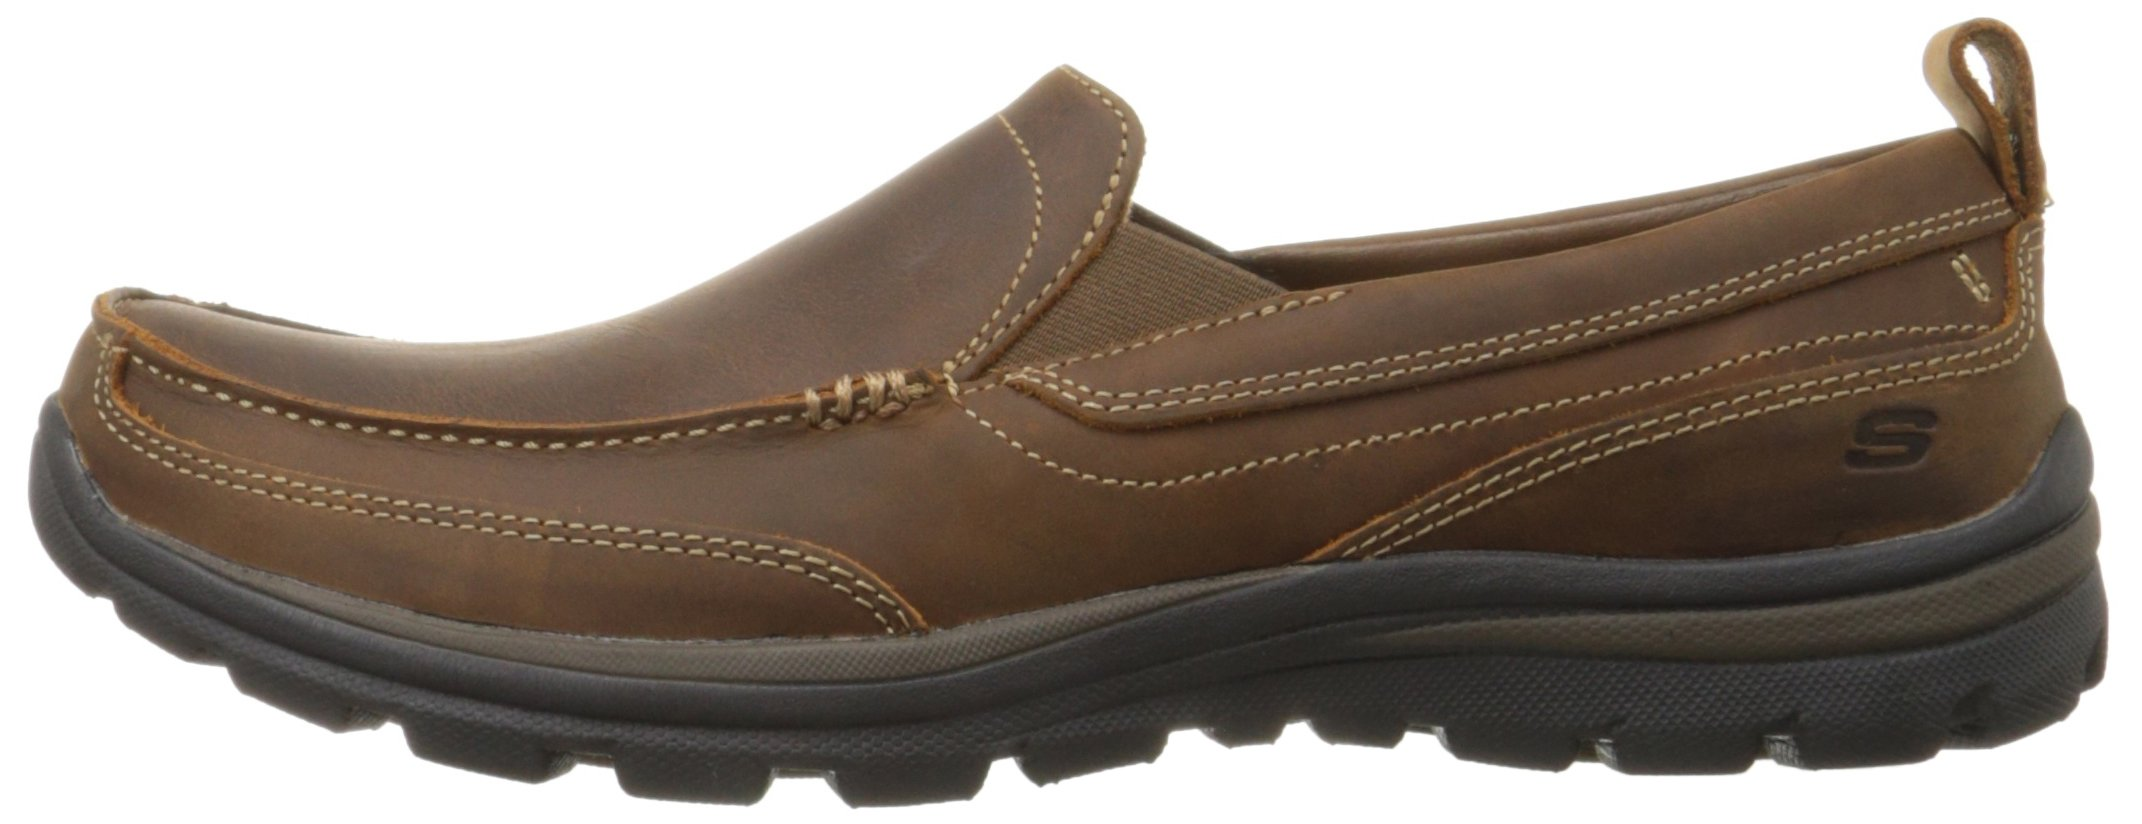 e56fda4c7425cf Skechers USA Men's Relaxed Fit Memory Foam Superior Gains Slip-On,8 M  US,Dark Brown - 63697-CDB < Loafers & Slip-Ons < Clothing, Shoes & Jewelry  - tibs